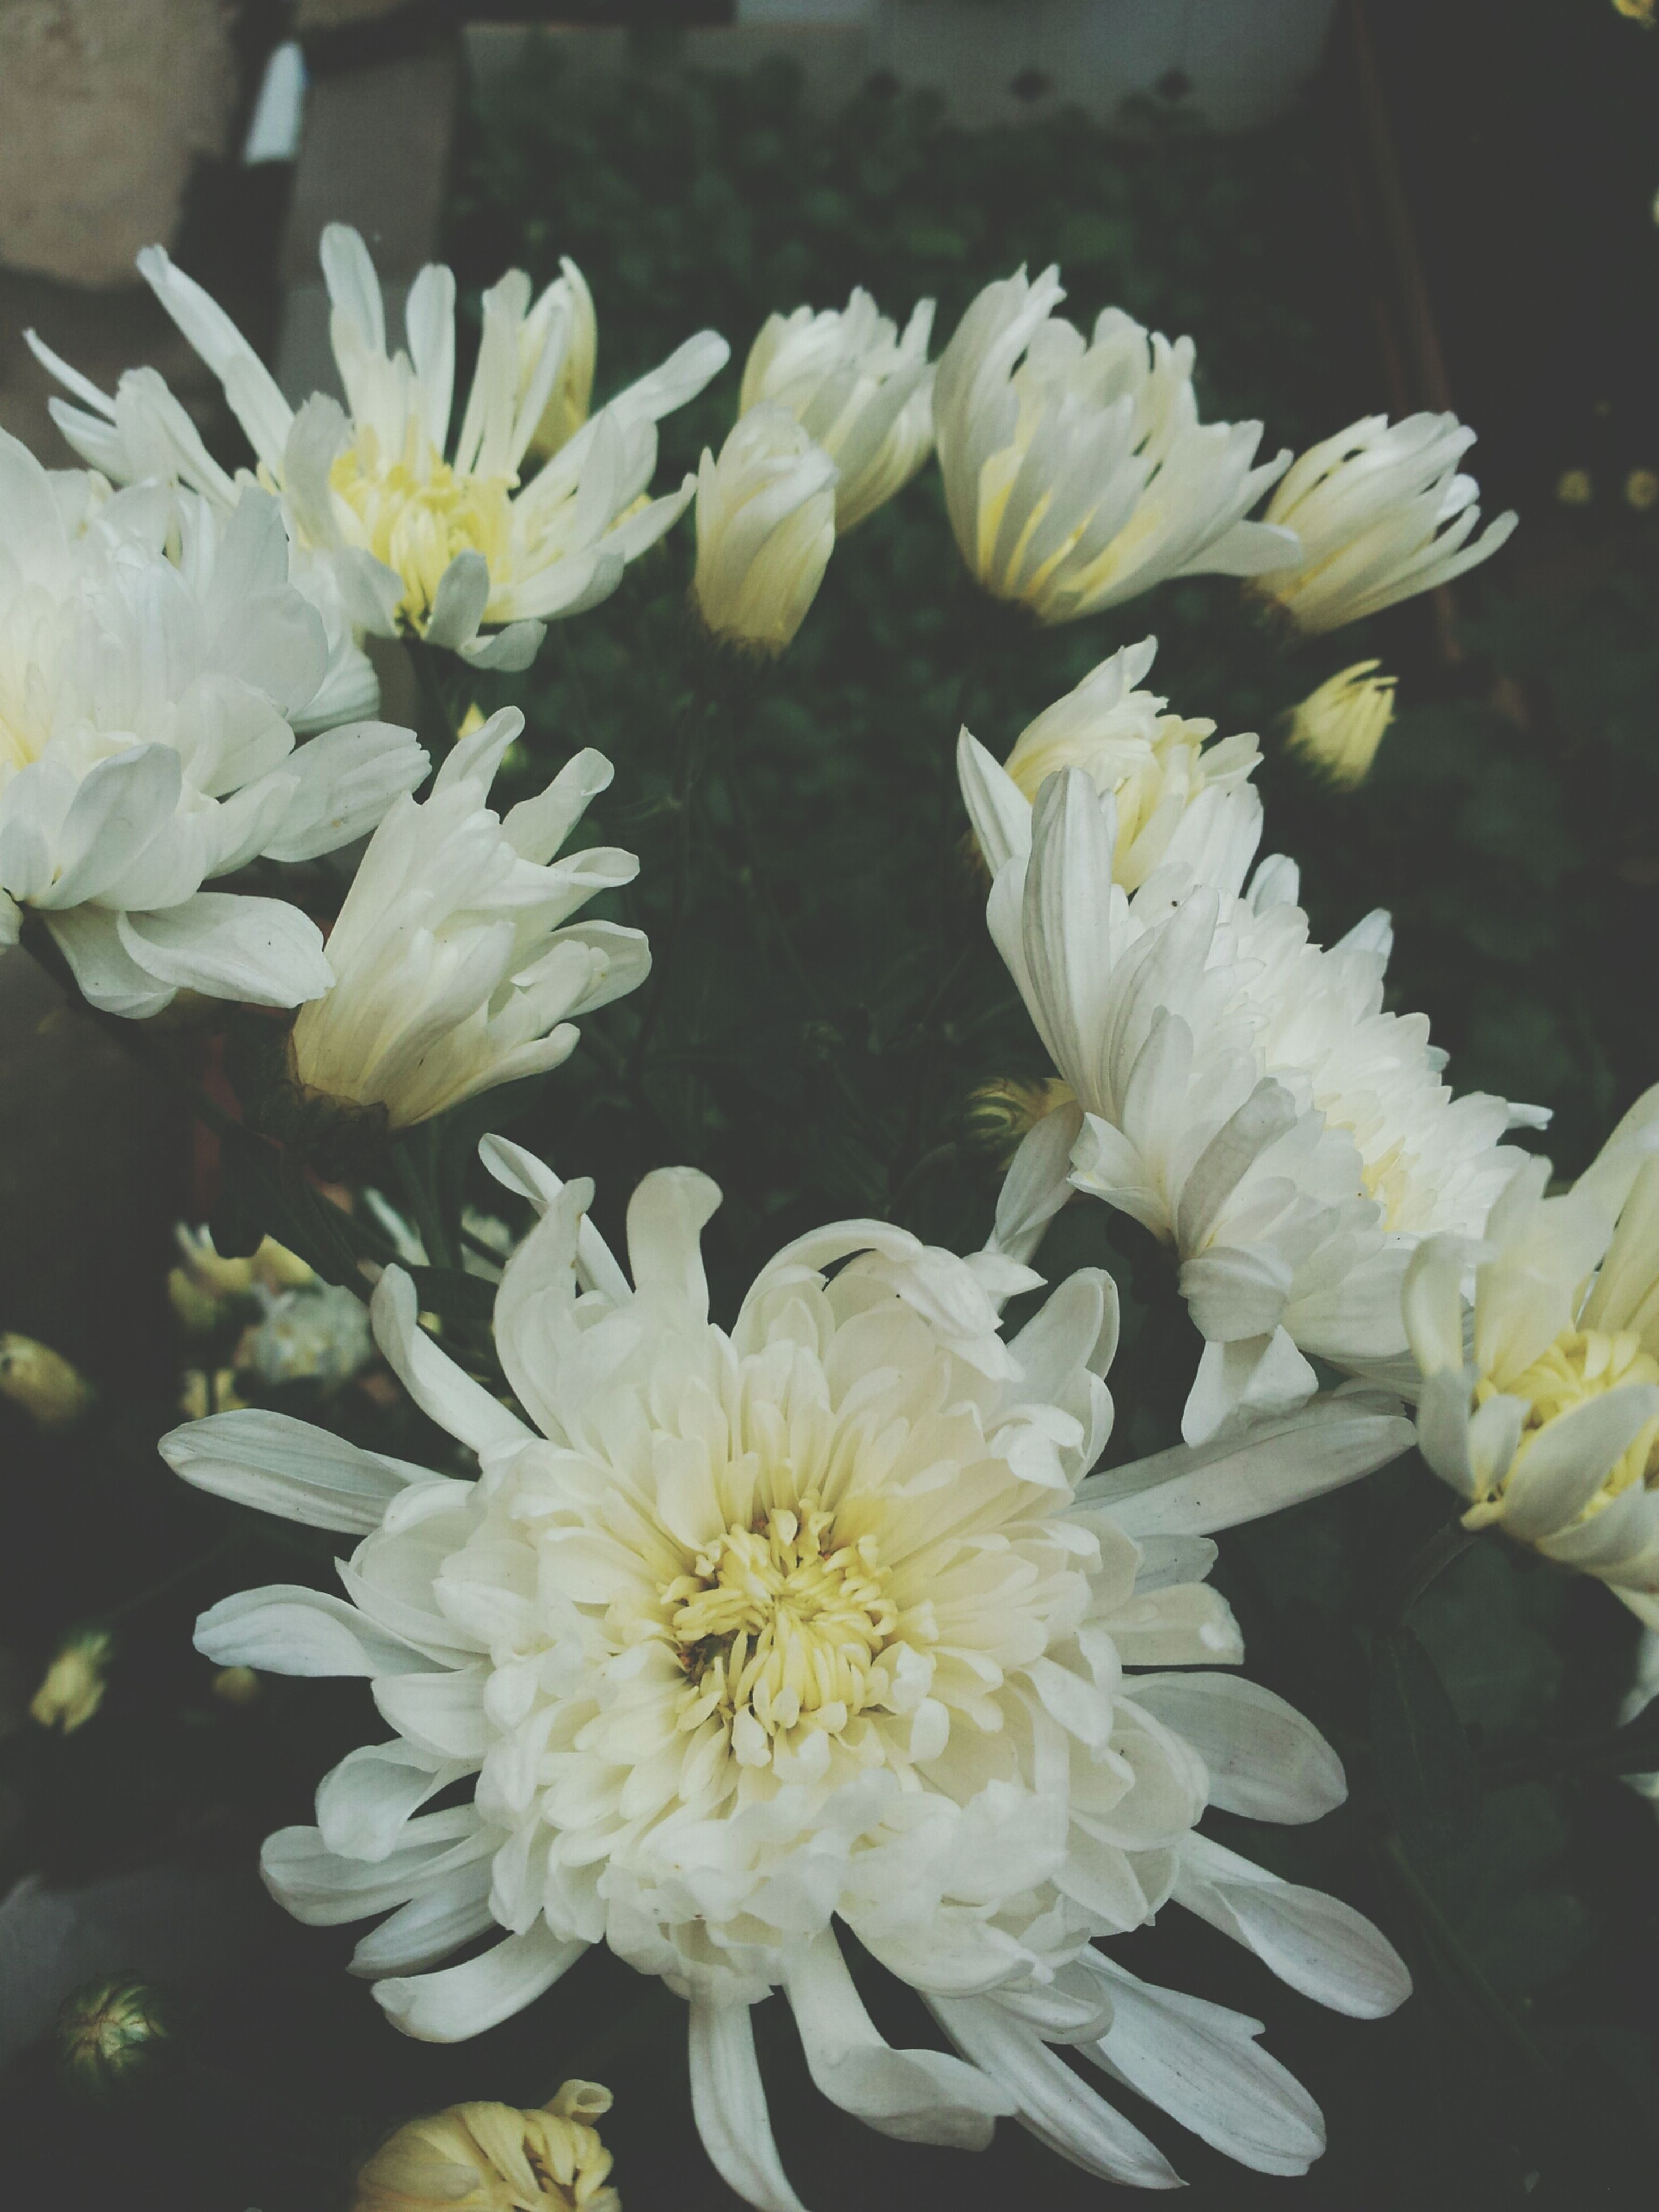 flower, petal, freshness, flower head, fragility, white color, beauty in nature, growth, blooming, close-up, nature, plant, focus on foreground, high angle view, indoors, in bloom, pollen, no people, white, yellow